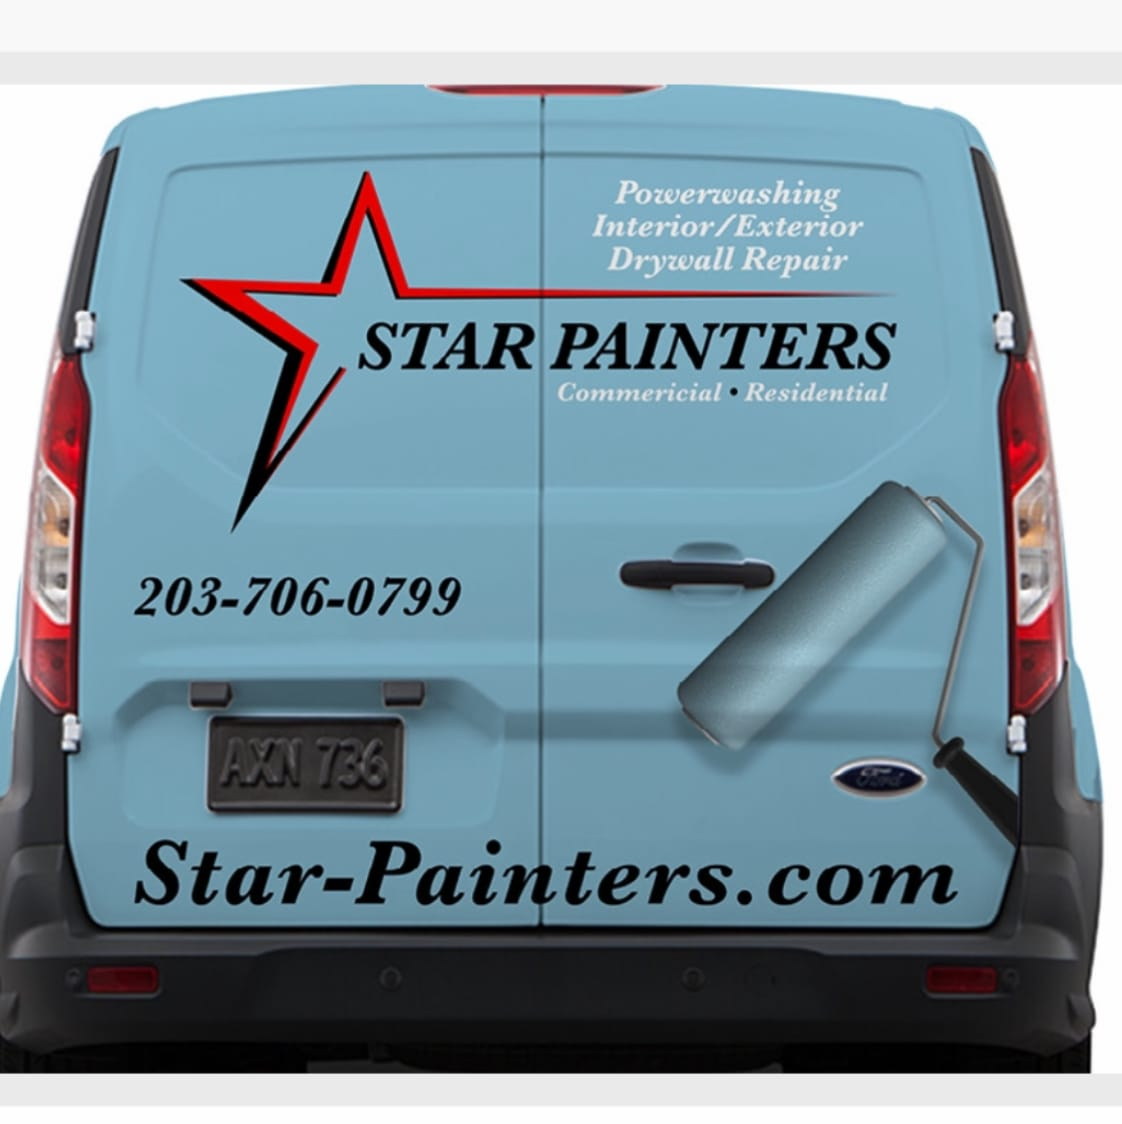 Star Painters, LLC